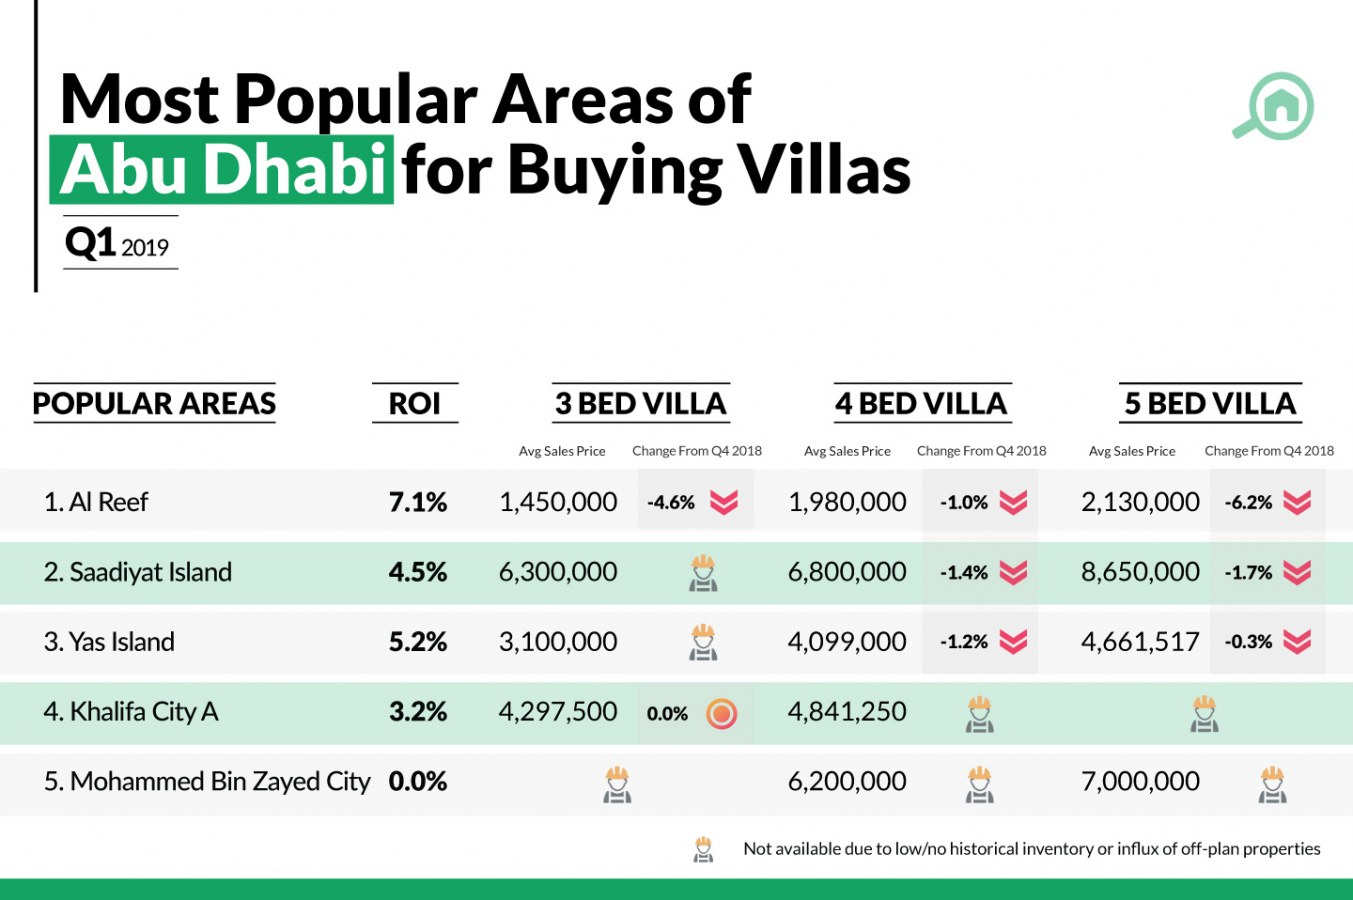 Sales prices for villas in Abu Dhabi